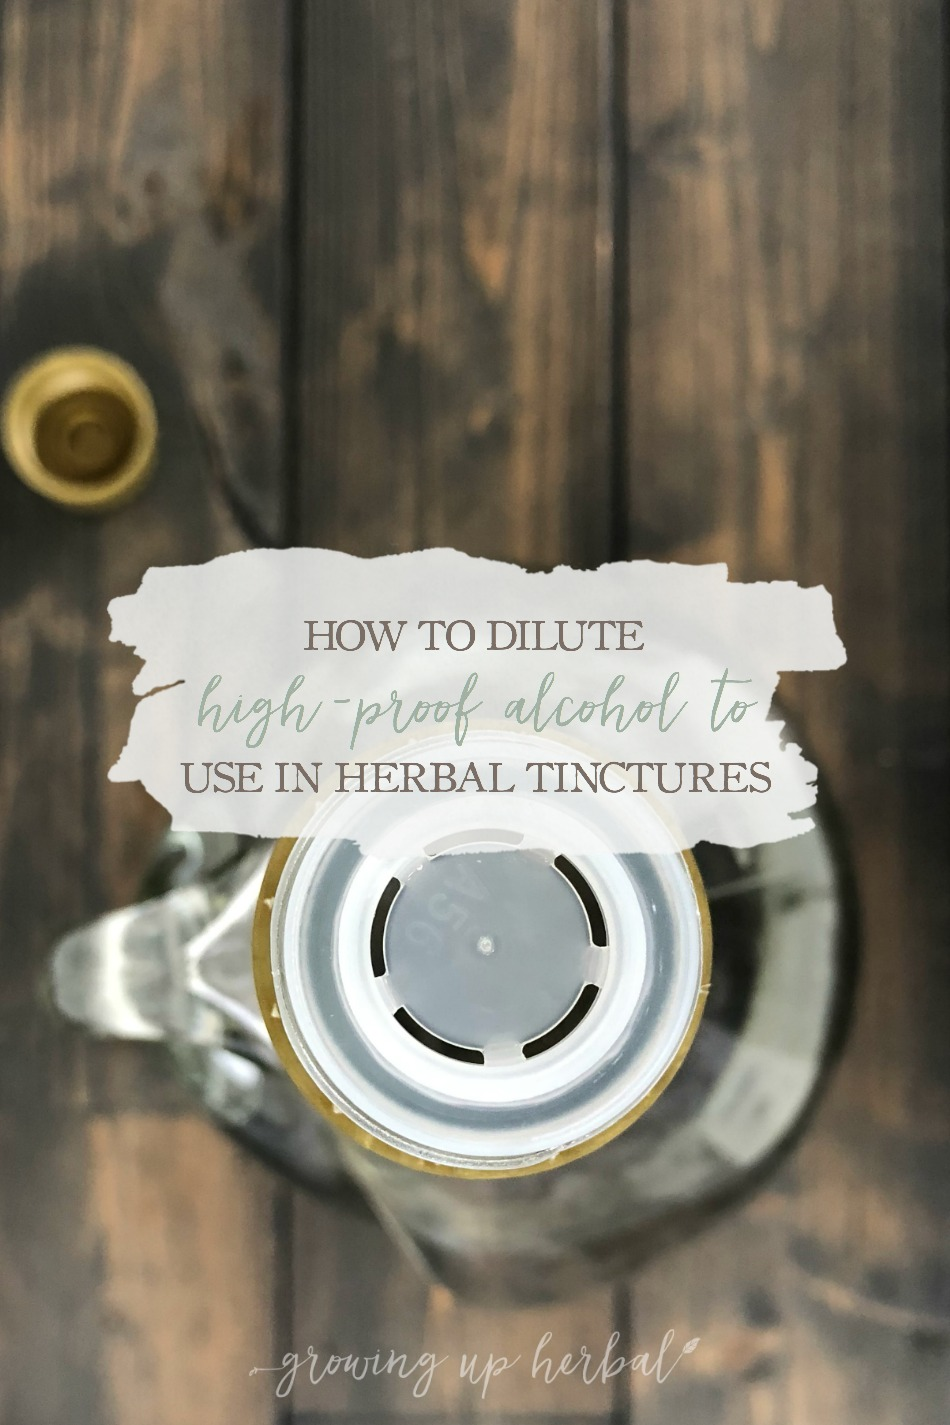 How To Dilute High-Proof Alcohol To Use In Herbal Tinctures | Growing Up Herbal | Out of your favorite tincture-making alcohol? Here's how to dilute high-proof alcohol for tinctures instead!